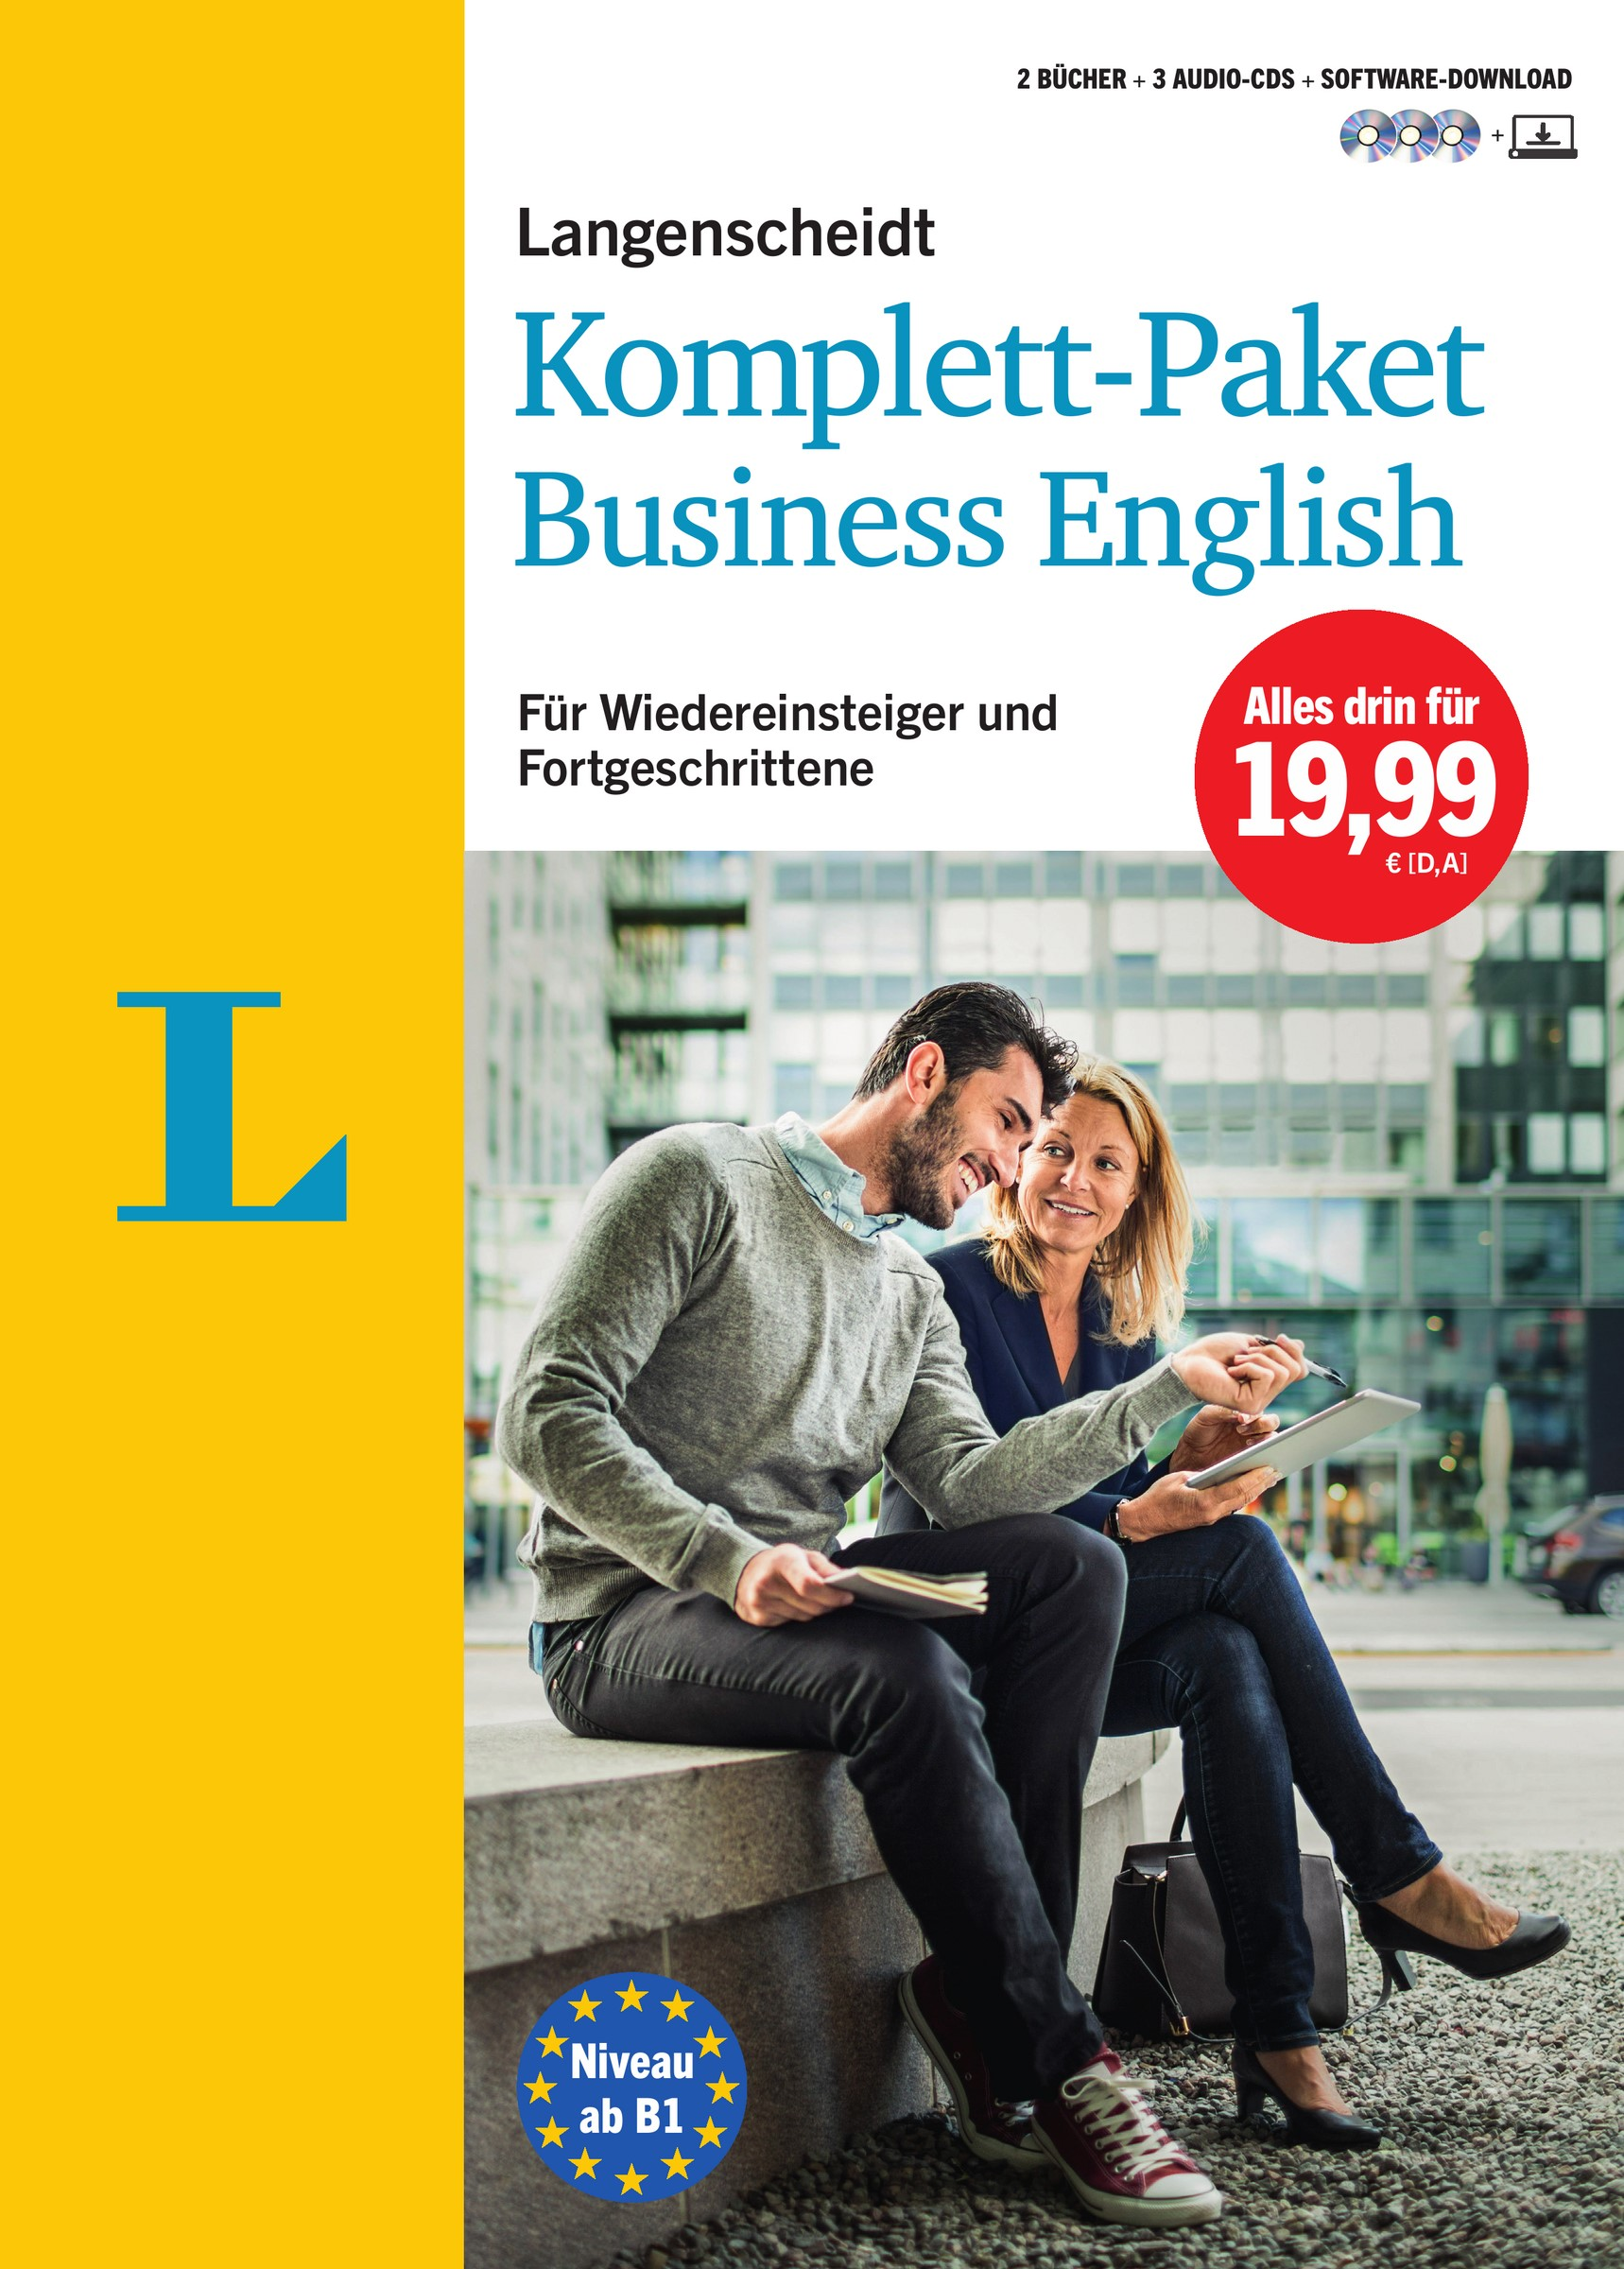 Langenscheidt Komplett-Paket Business English - Sprachkurs mit 2 Büchern, 3 Audio-CDs und Software-Download | Bradbeer / Langenscheidt, 2016 | Buch (Cover)